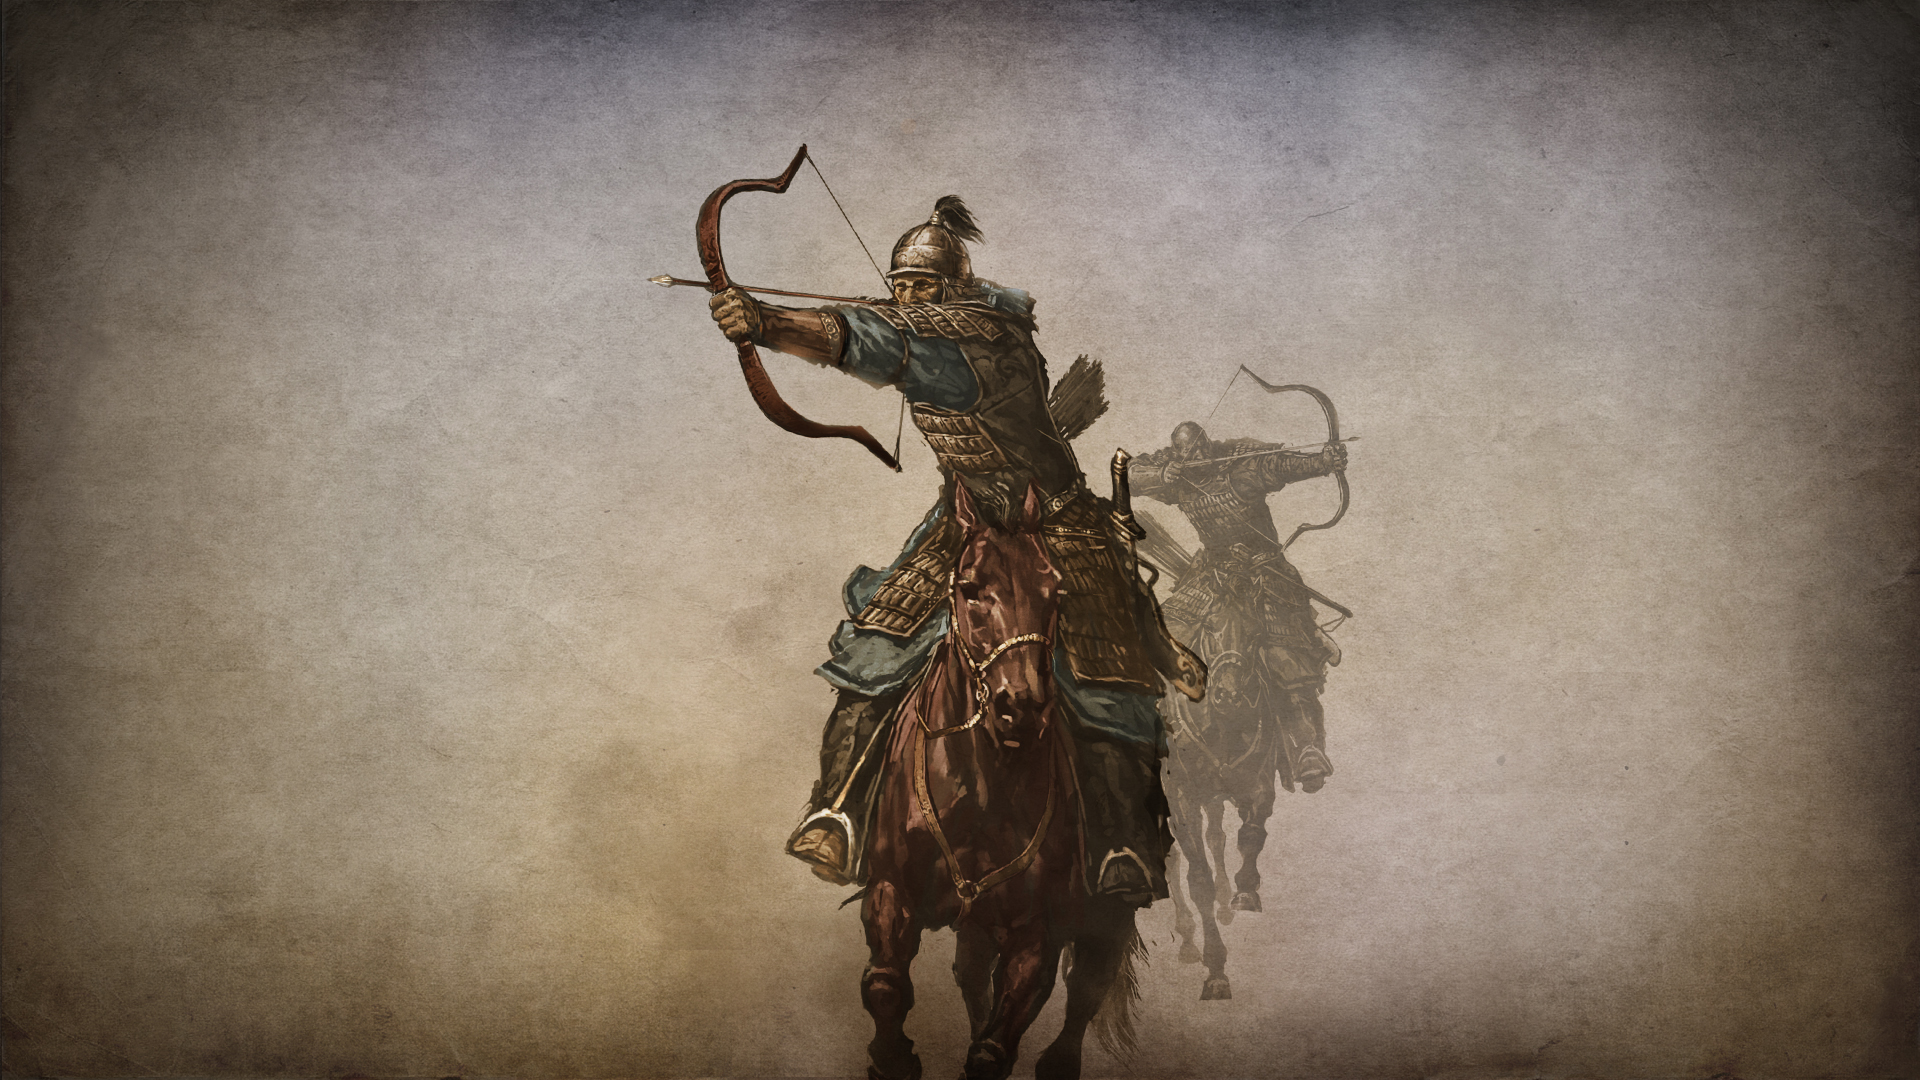 MOUNT AND BLADE fantasy warrior armor weapon archer g wallpaper 1920x1080